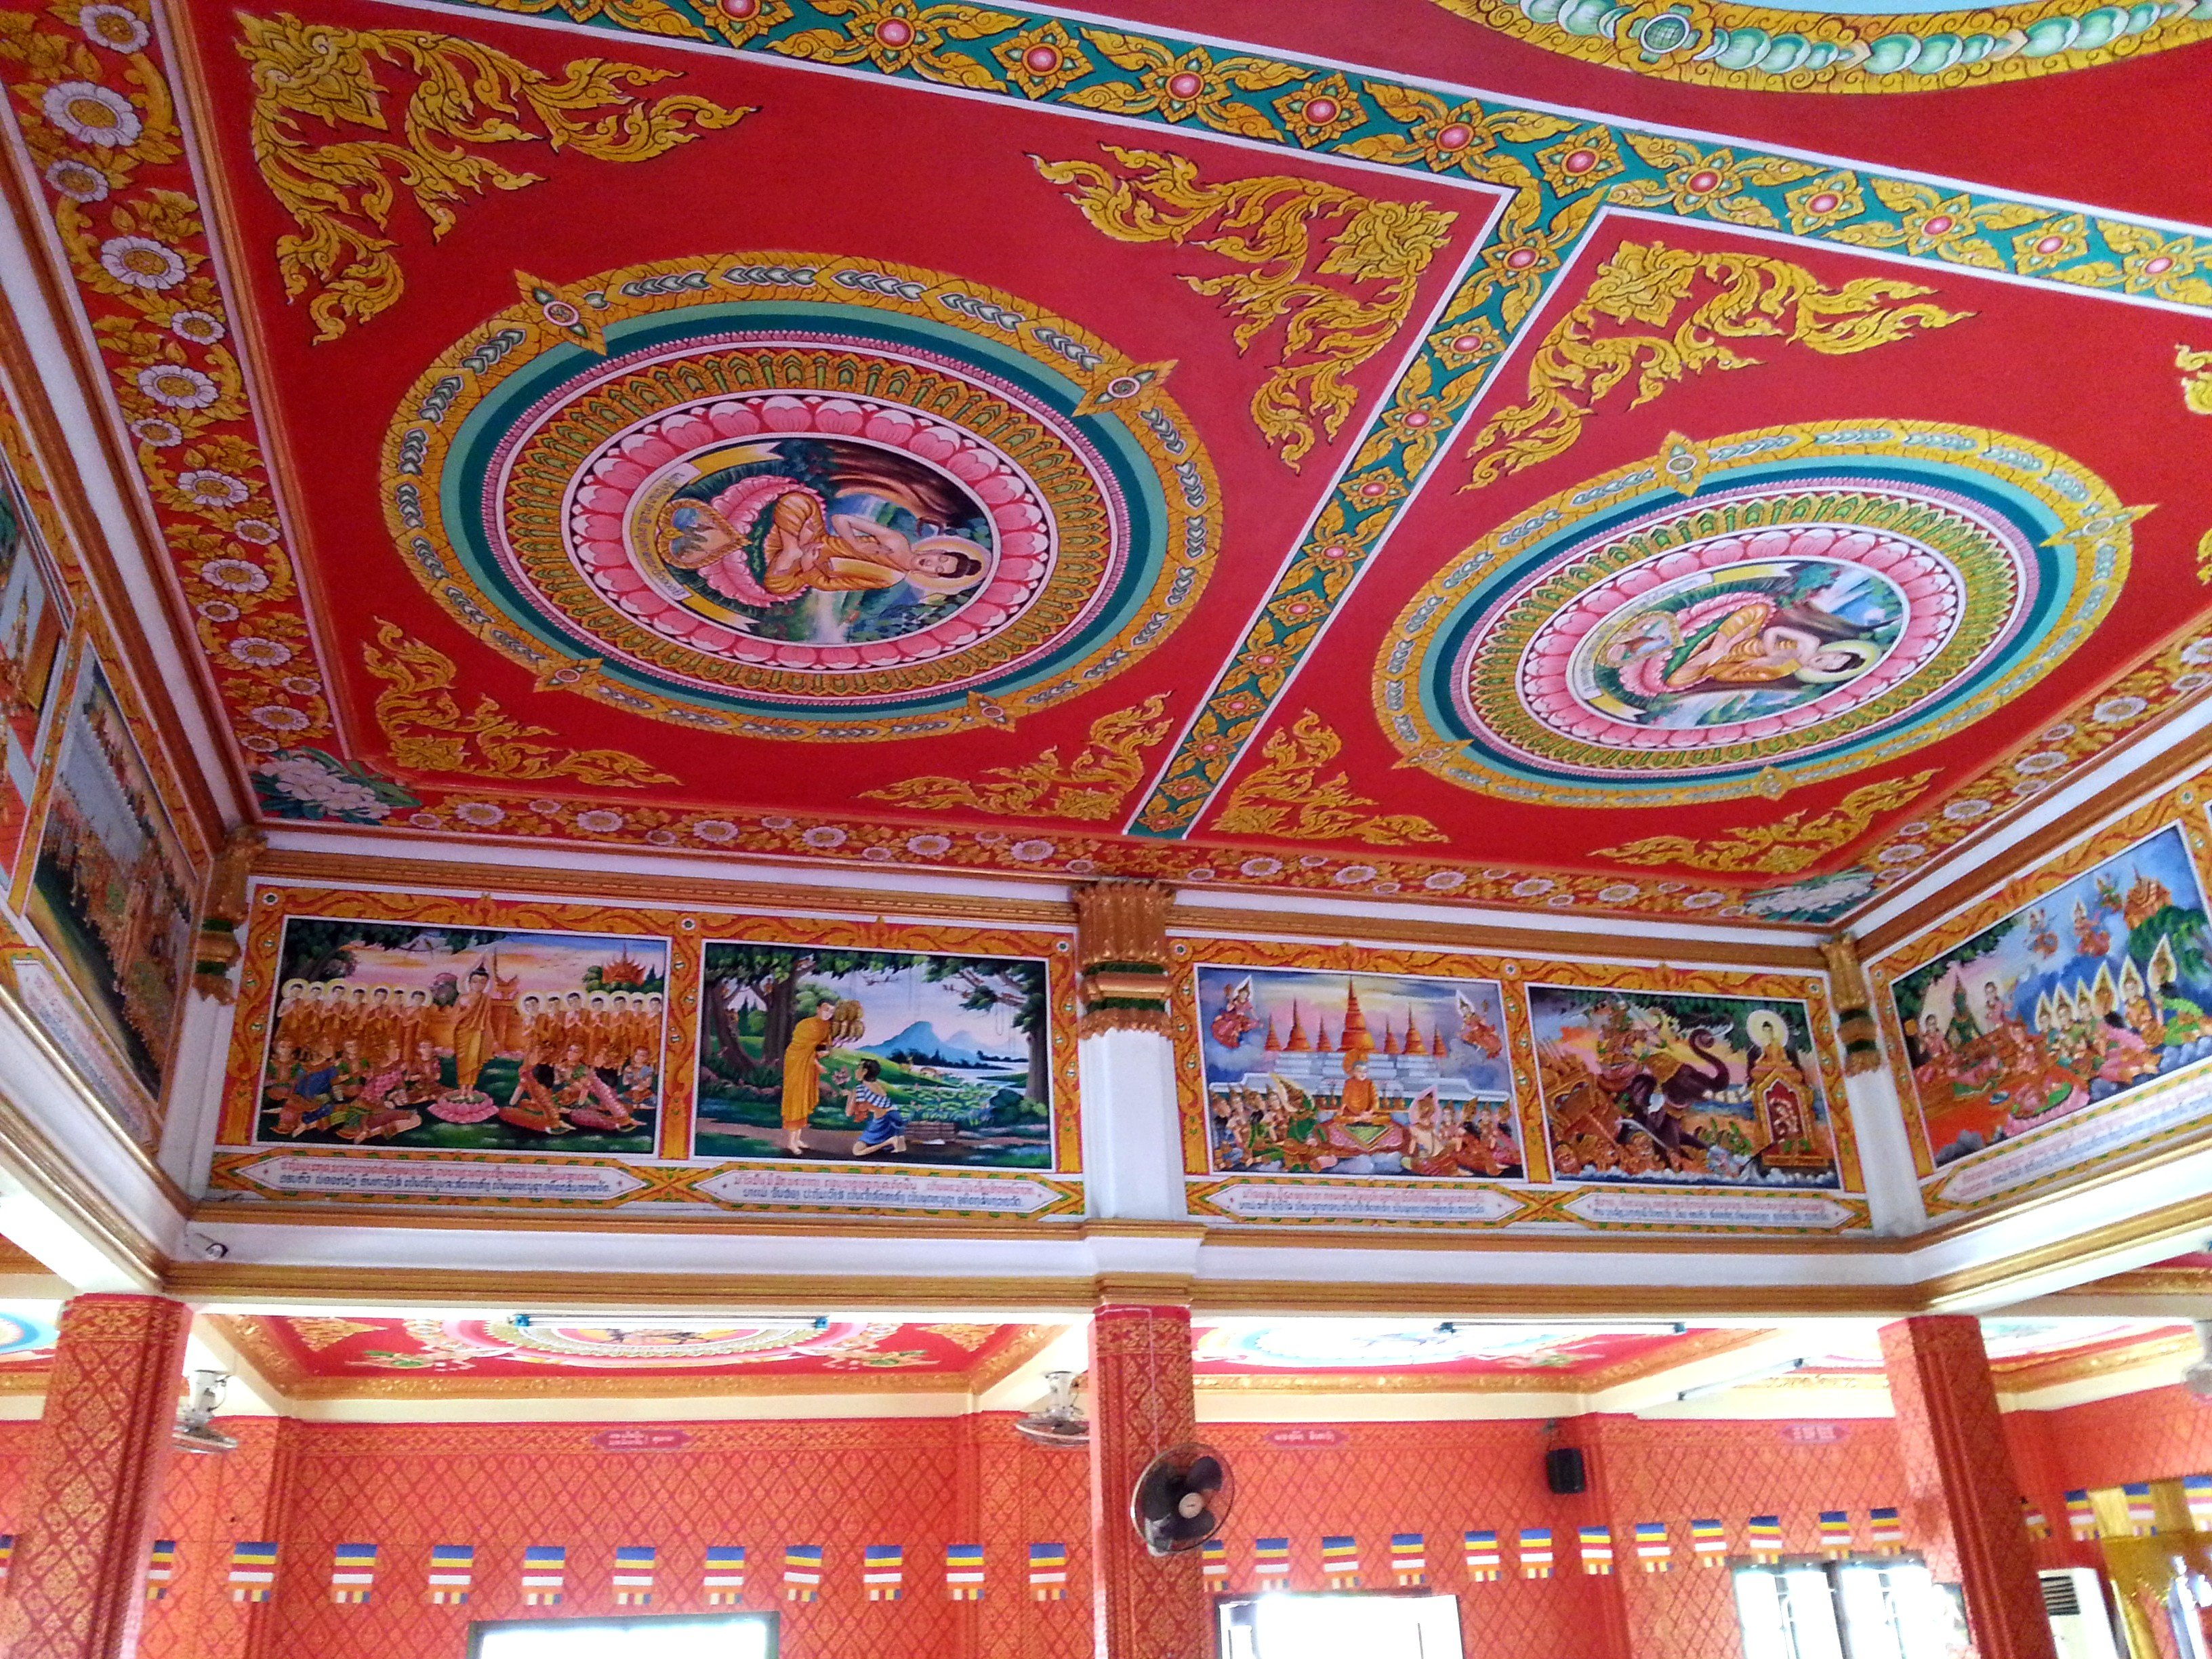 Ceiling mural at Wat Chanthaboury